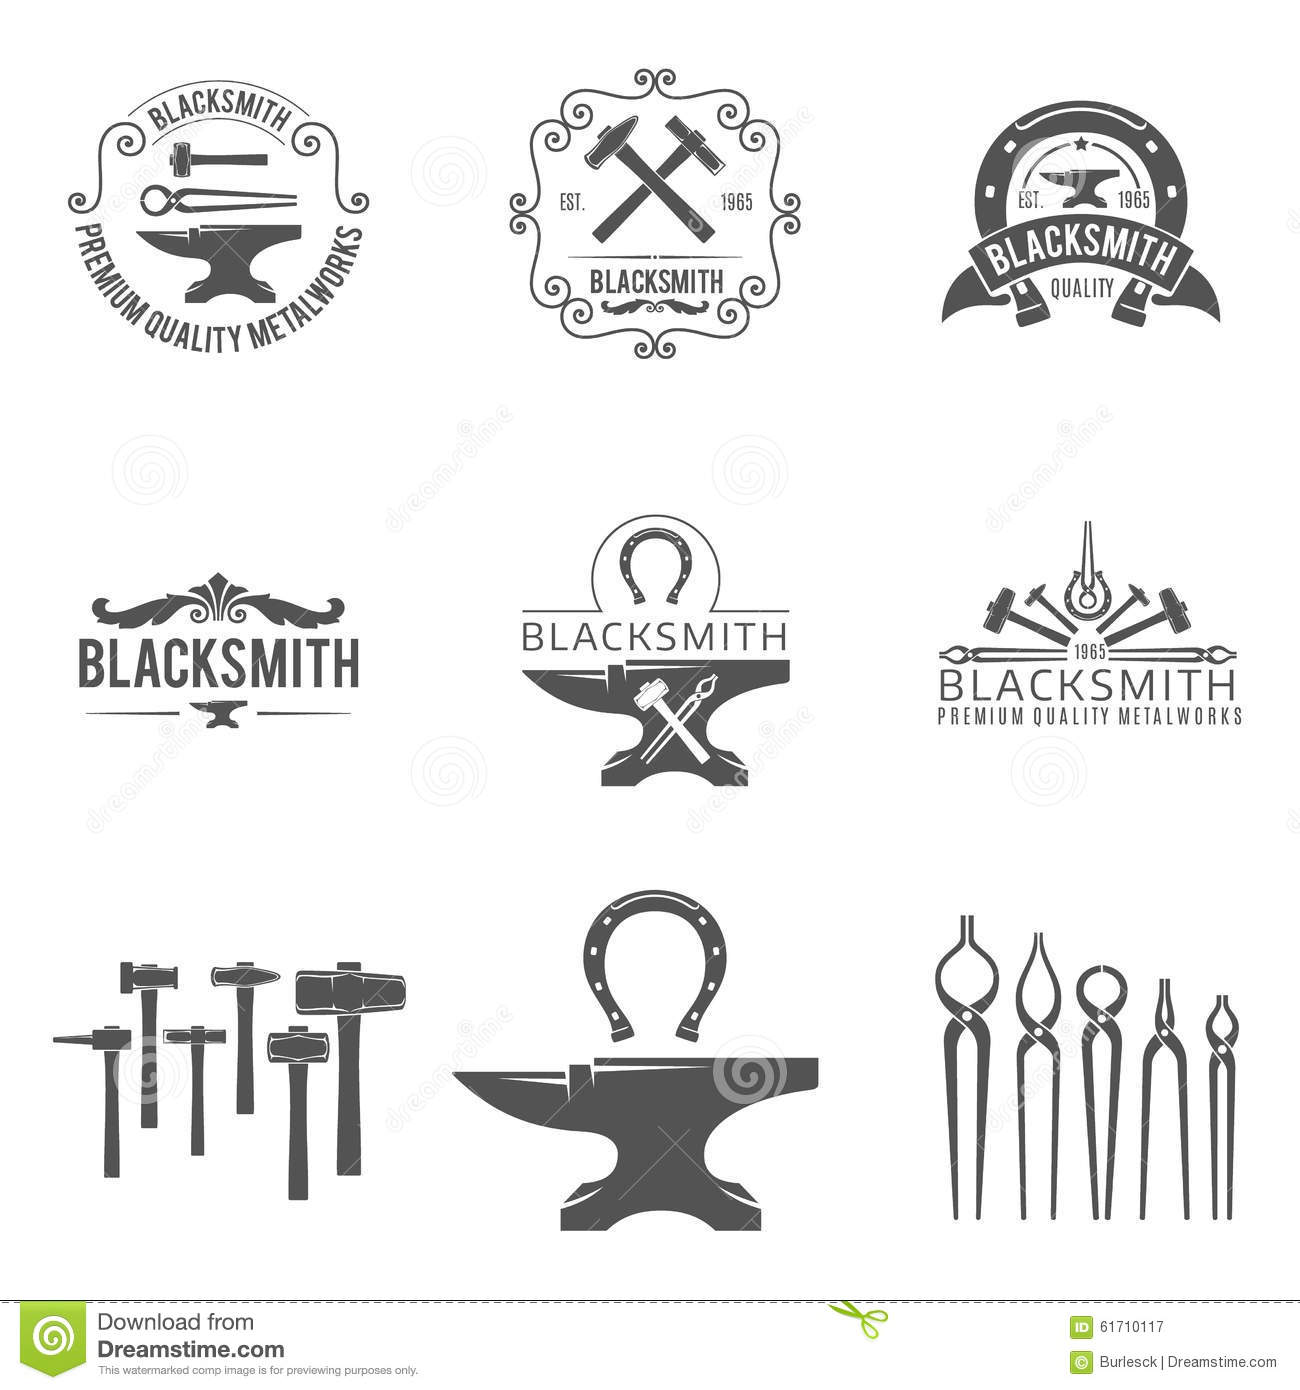 hand plane clipart with Stock Illustration Vintage Blacksmith Metalworks Logos Emblems Labels Black Set Craft Ironwork Equipment Symbol Workshop Profession Image61710117 on Capas De Facebook  o Fazer also Time Is Of The Essence furthermore 1437132107 264086 moreover A Young Boy Playing With A Paper Airplane additionally Smartphone Images Free.